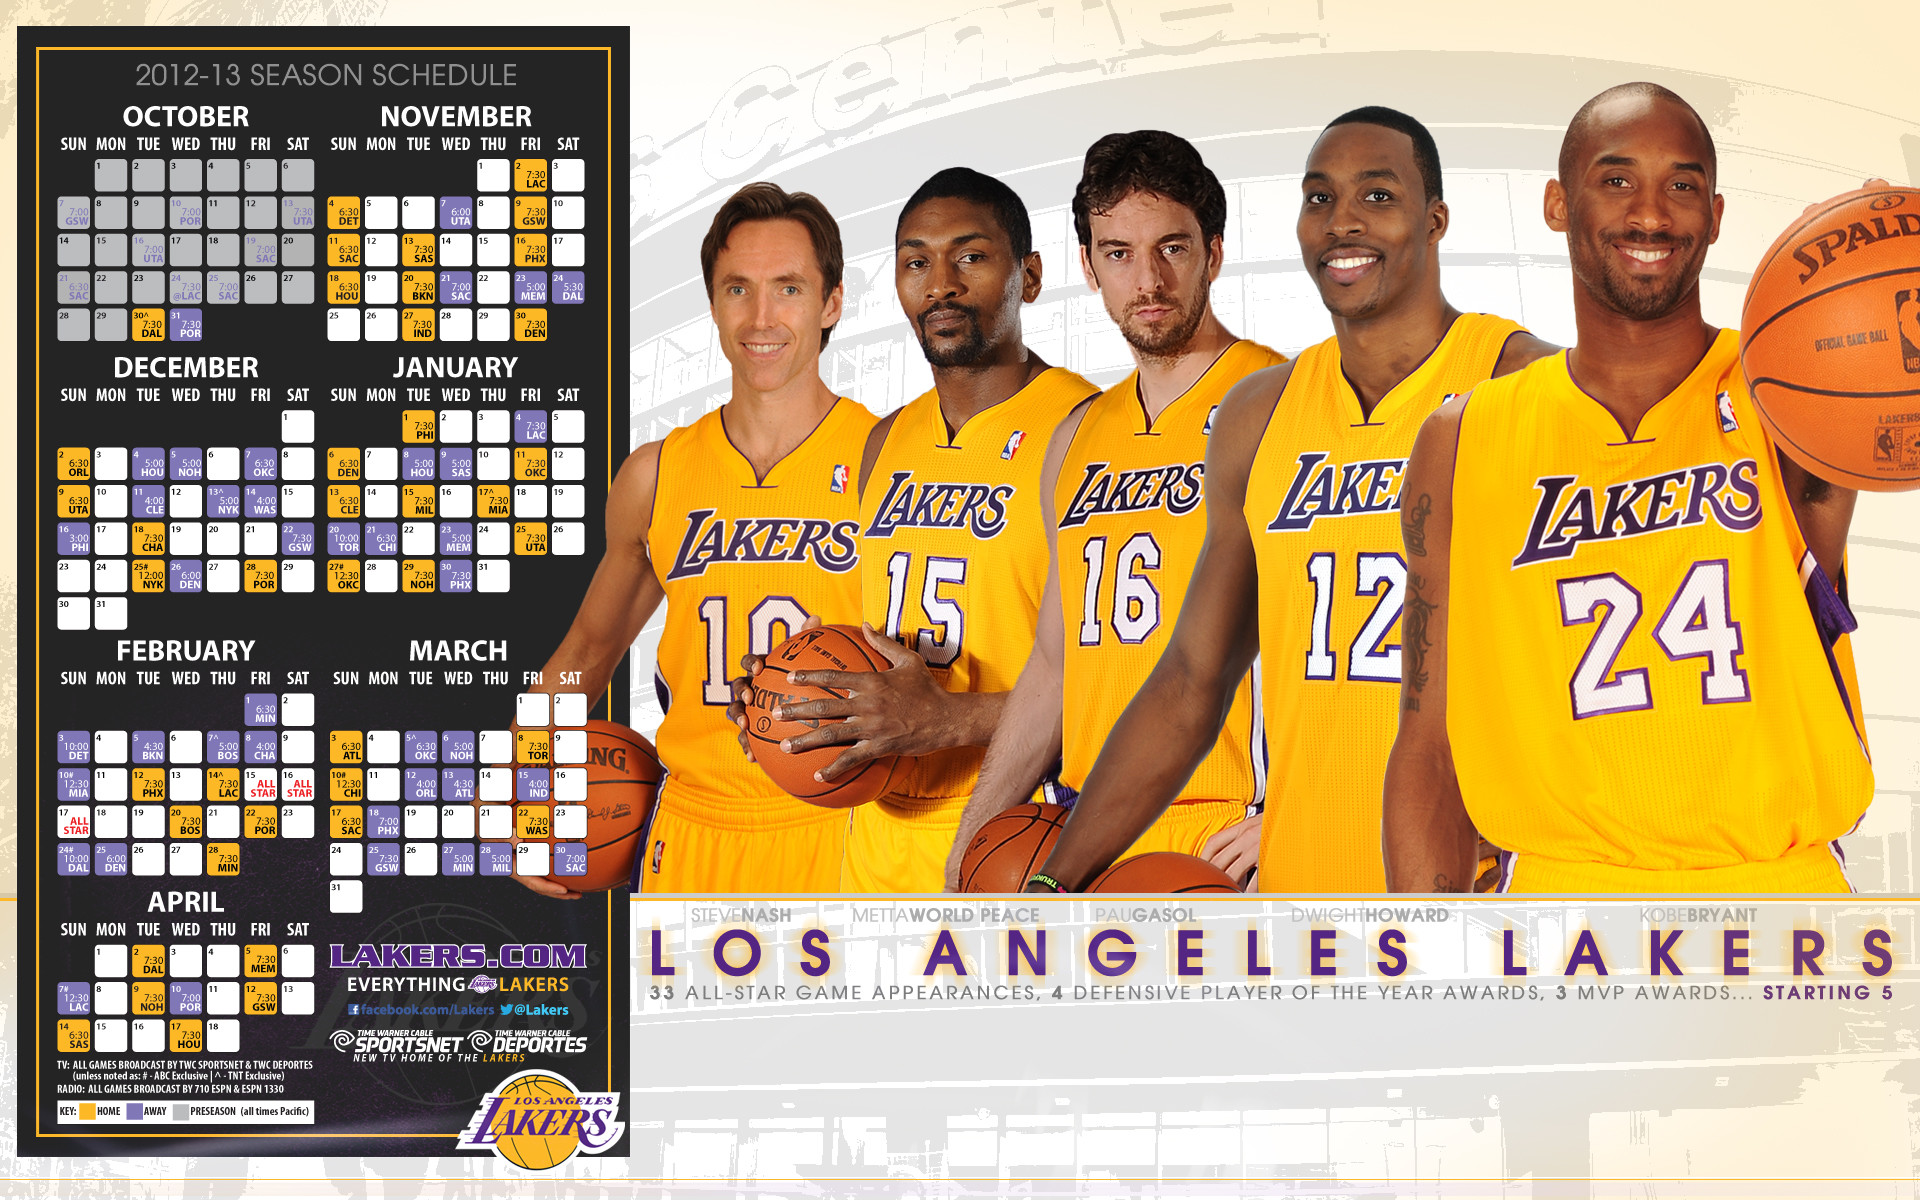 lakers   Lakers Desktop Wallpapers   THE OFFICIAL SITE OF THE LOS ANGELES .